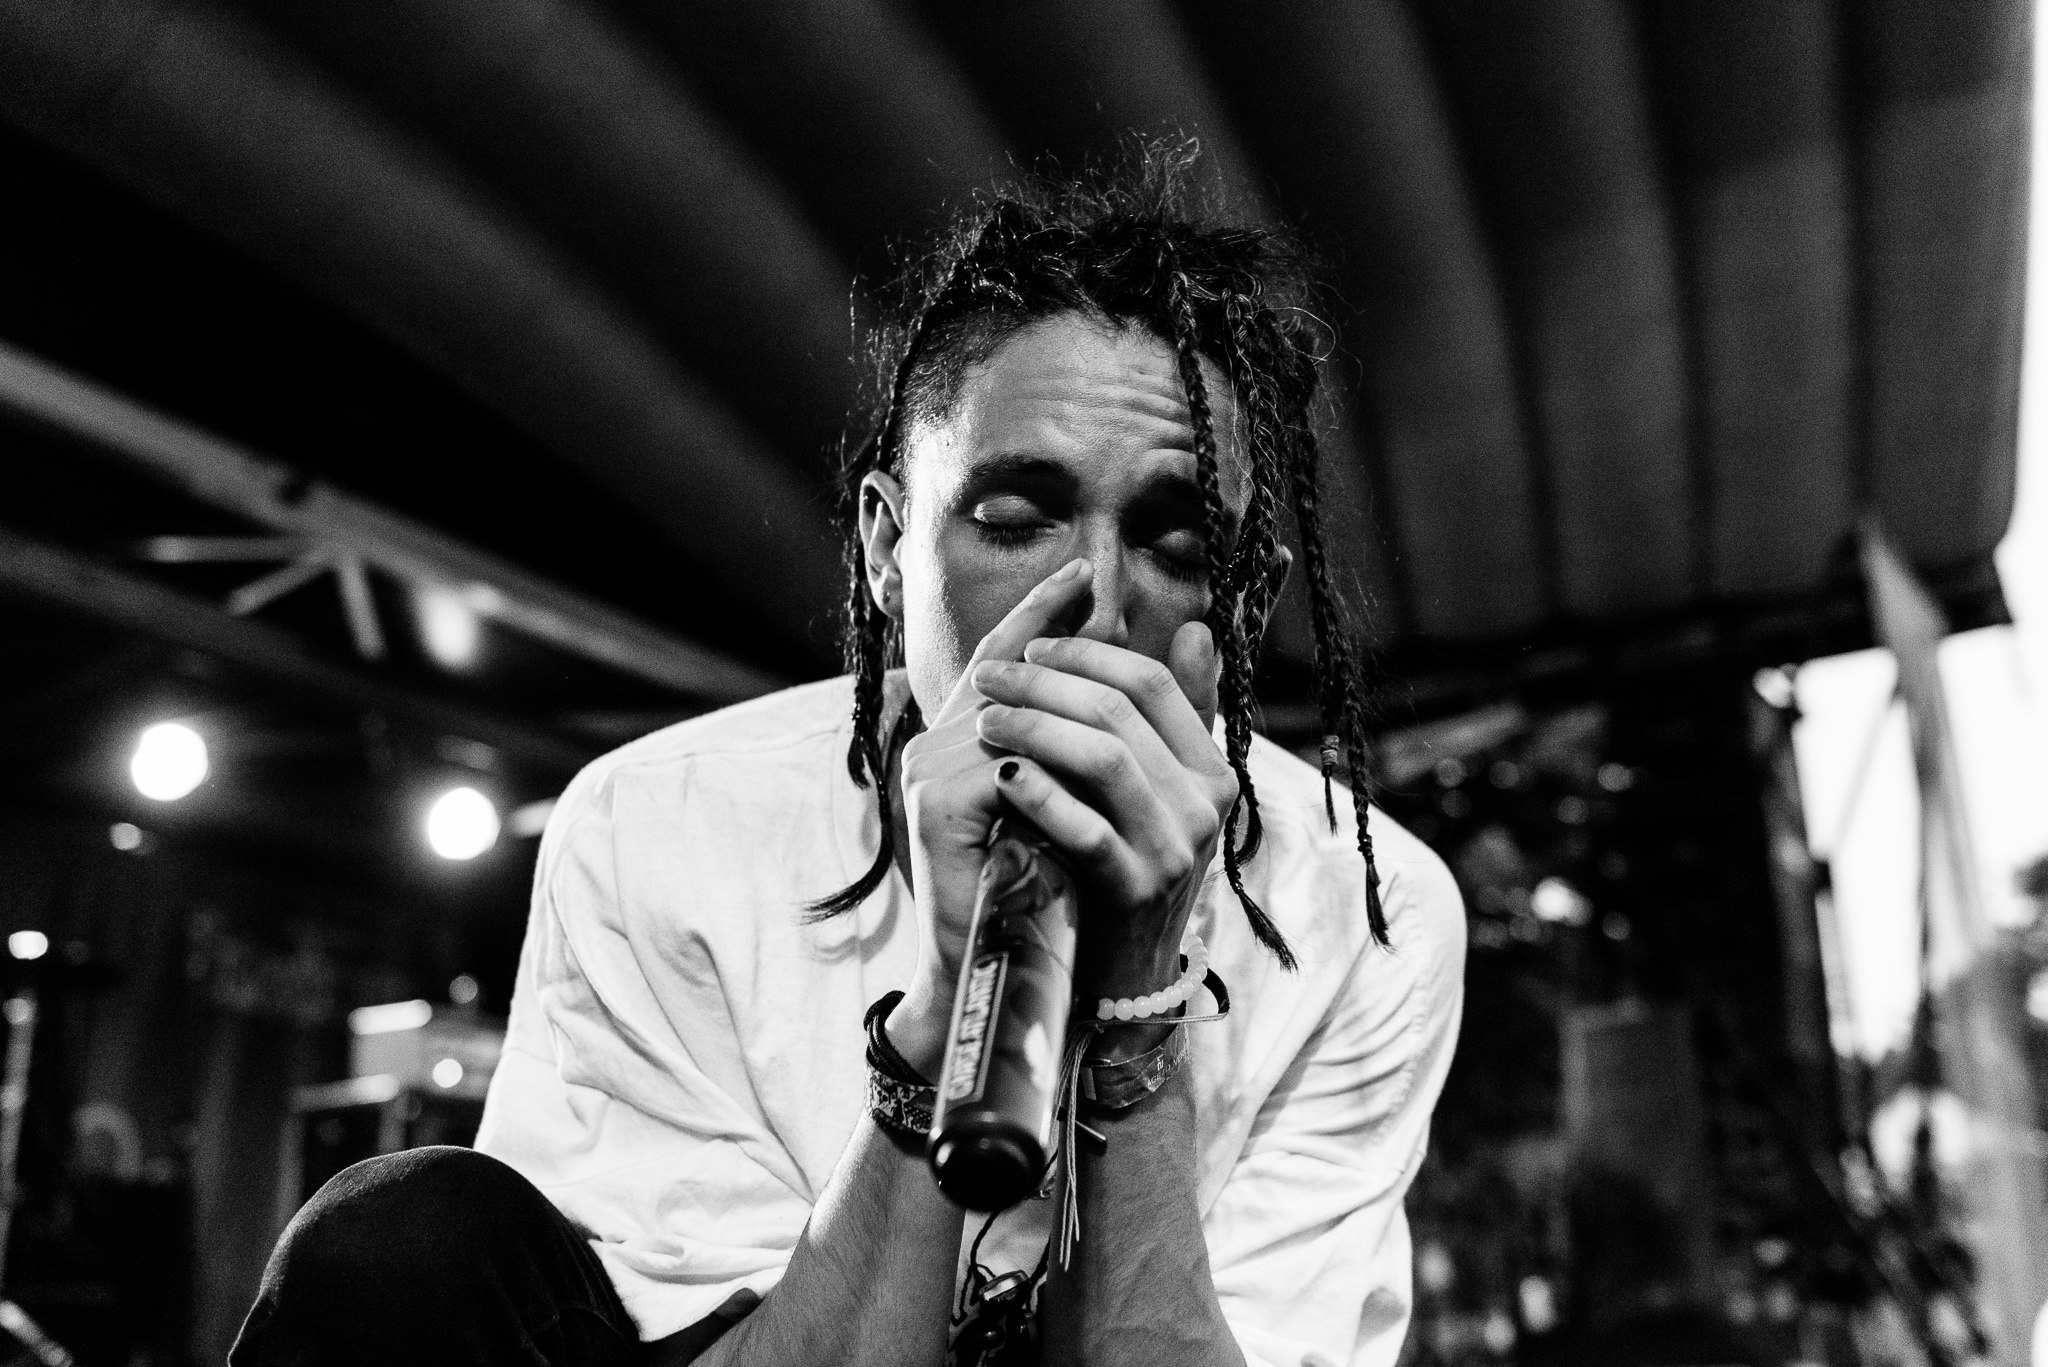 Chase Atlantic Warped Tour 2018 PNC Bank Arts Center Holmdel NJ Stars and Scars Photo